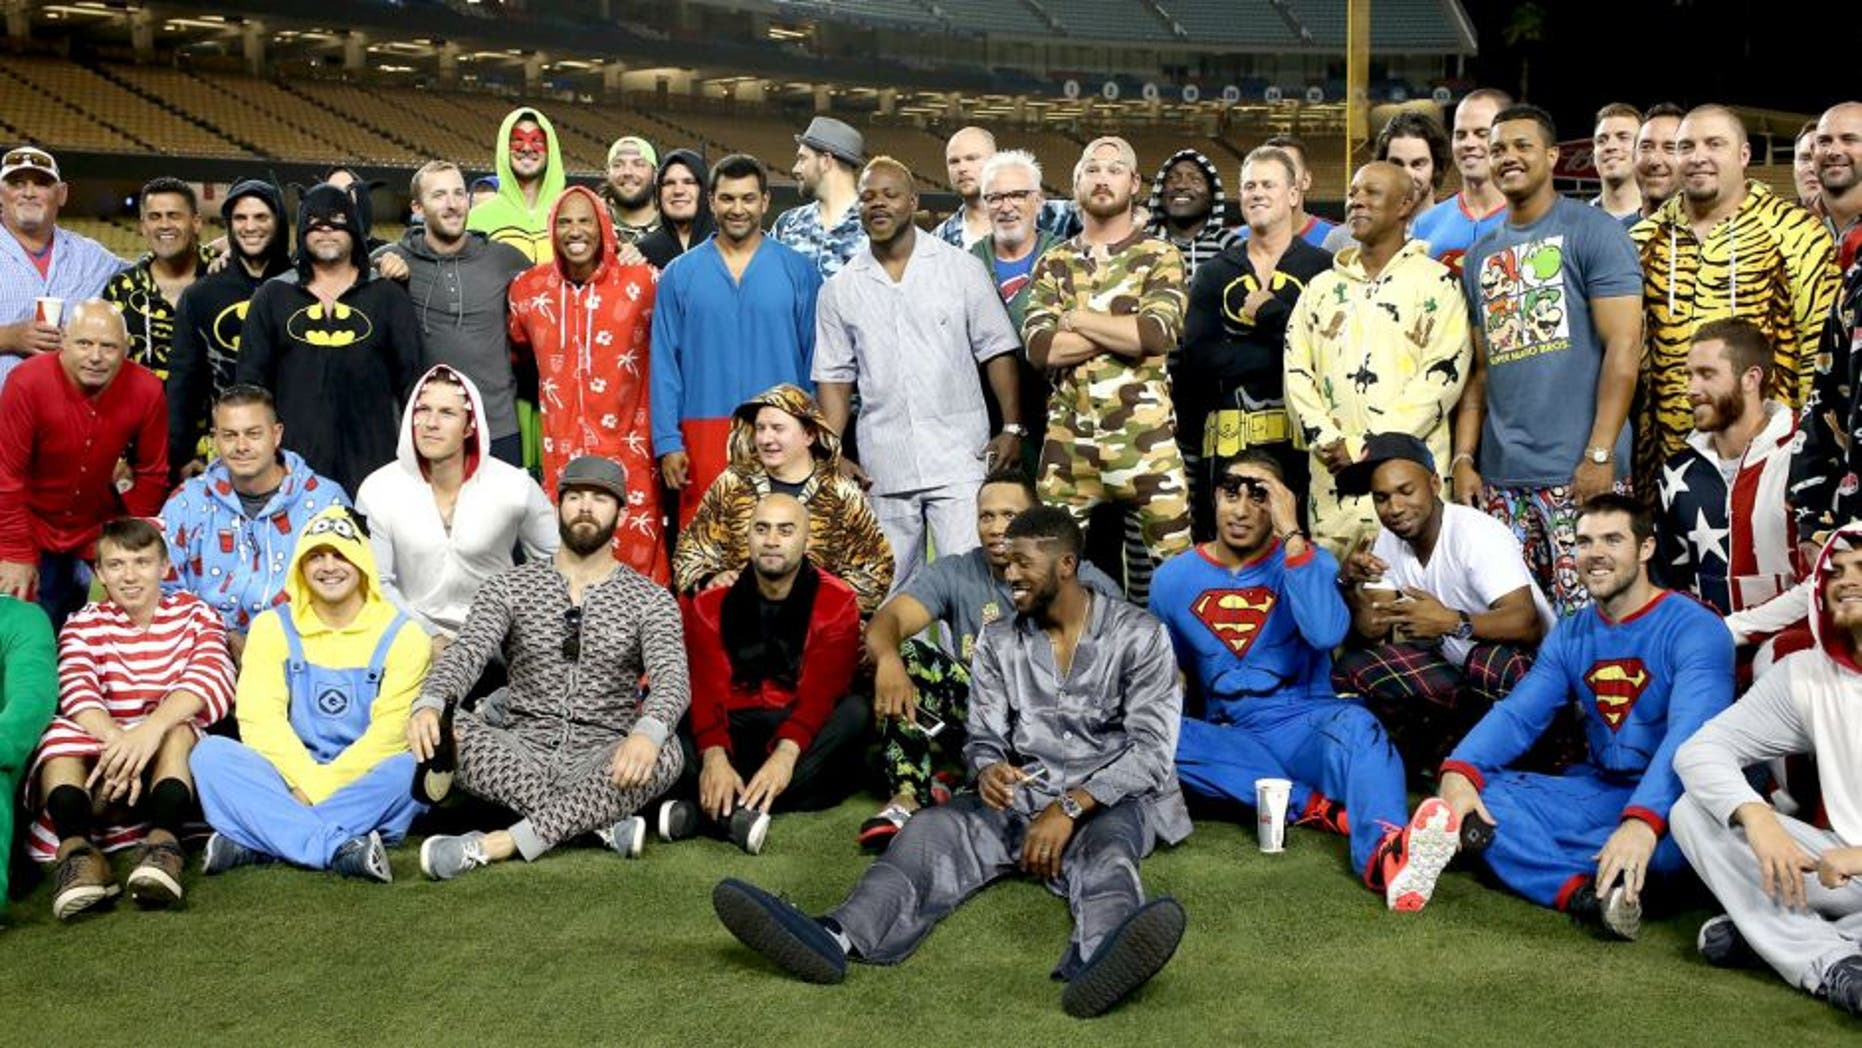 LOS ANGELES, CA - AUGUST 30: The Chicago Cubs pose for a team photo as they wear pajamas as part of a theme trip as they prepare to leave town after the game against the Los Angeles Dodgers at Dodger Stadium on August 30, 2015 in Los Angeles, California. Seated third from left with a gray hat and his hand on a bottle is pitcher Jake Arrieta #49, who had just pitched a no hitter in the game. The Cubs won 2-0. (Photo by Stephen Dunn/Getty Images)